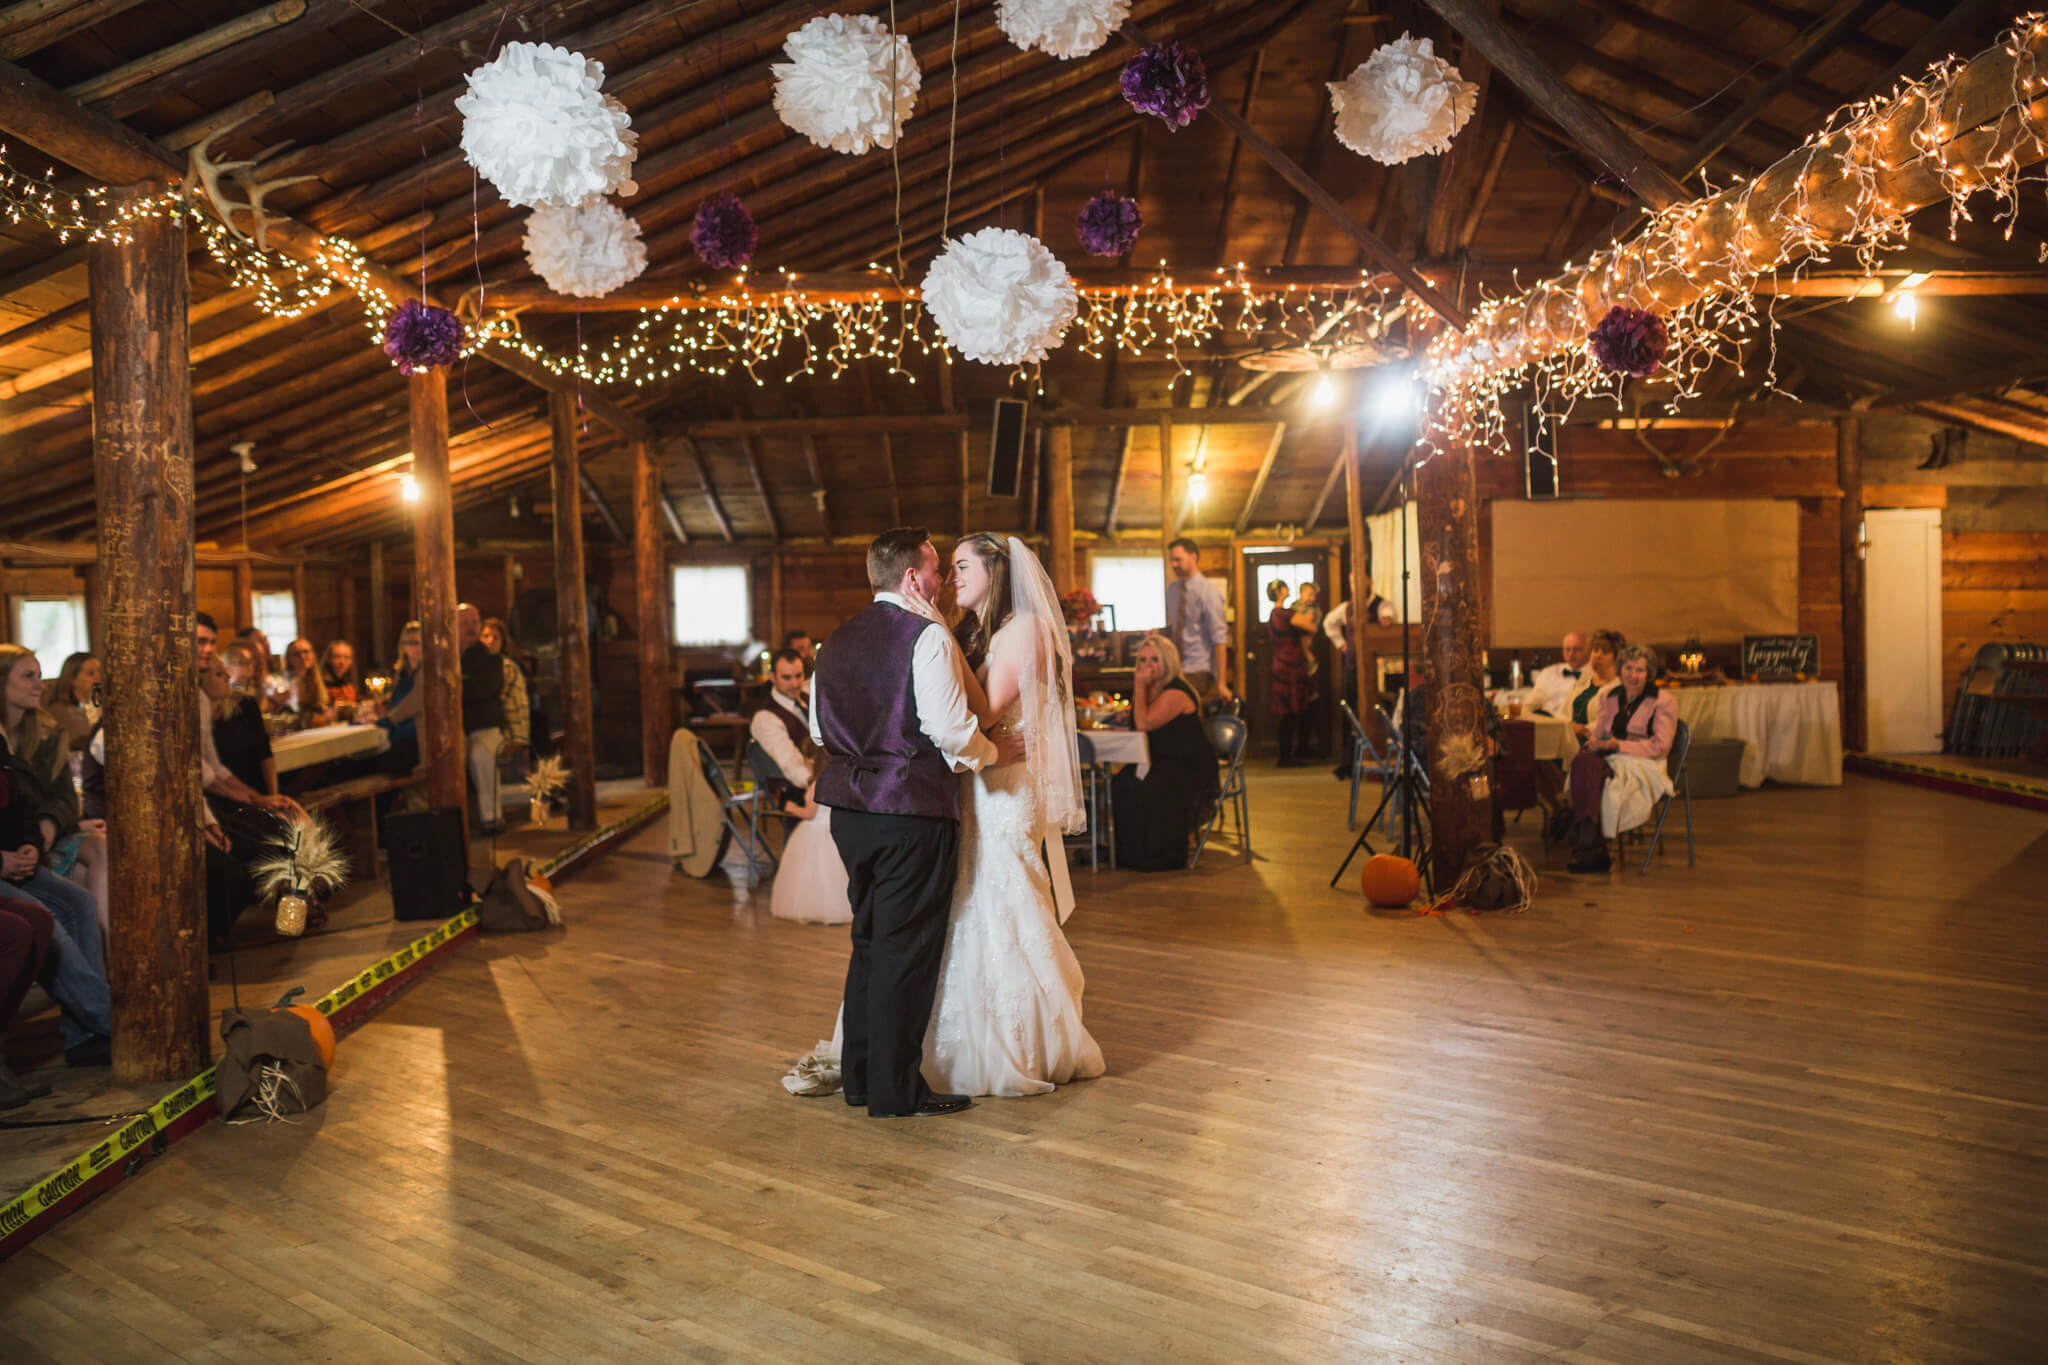 Mitcham's Barn Wedding-207.JPG